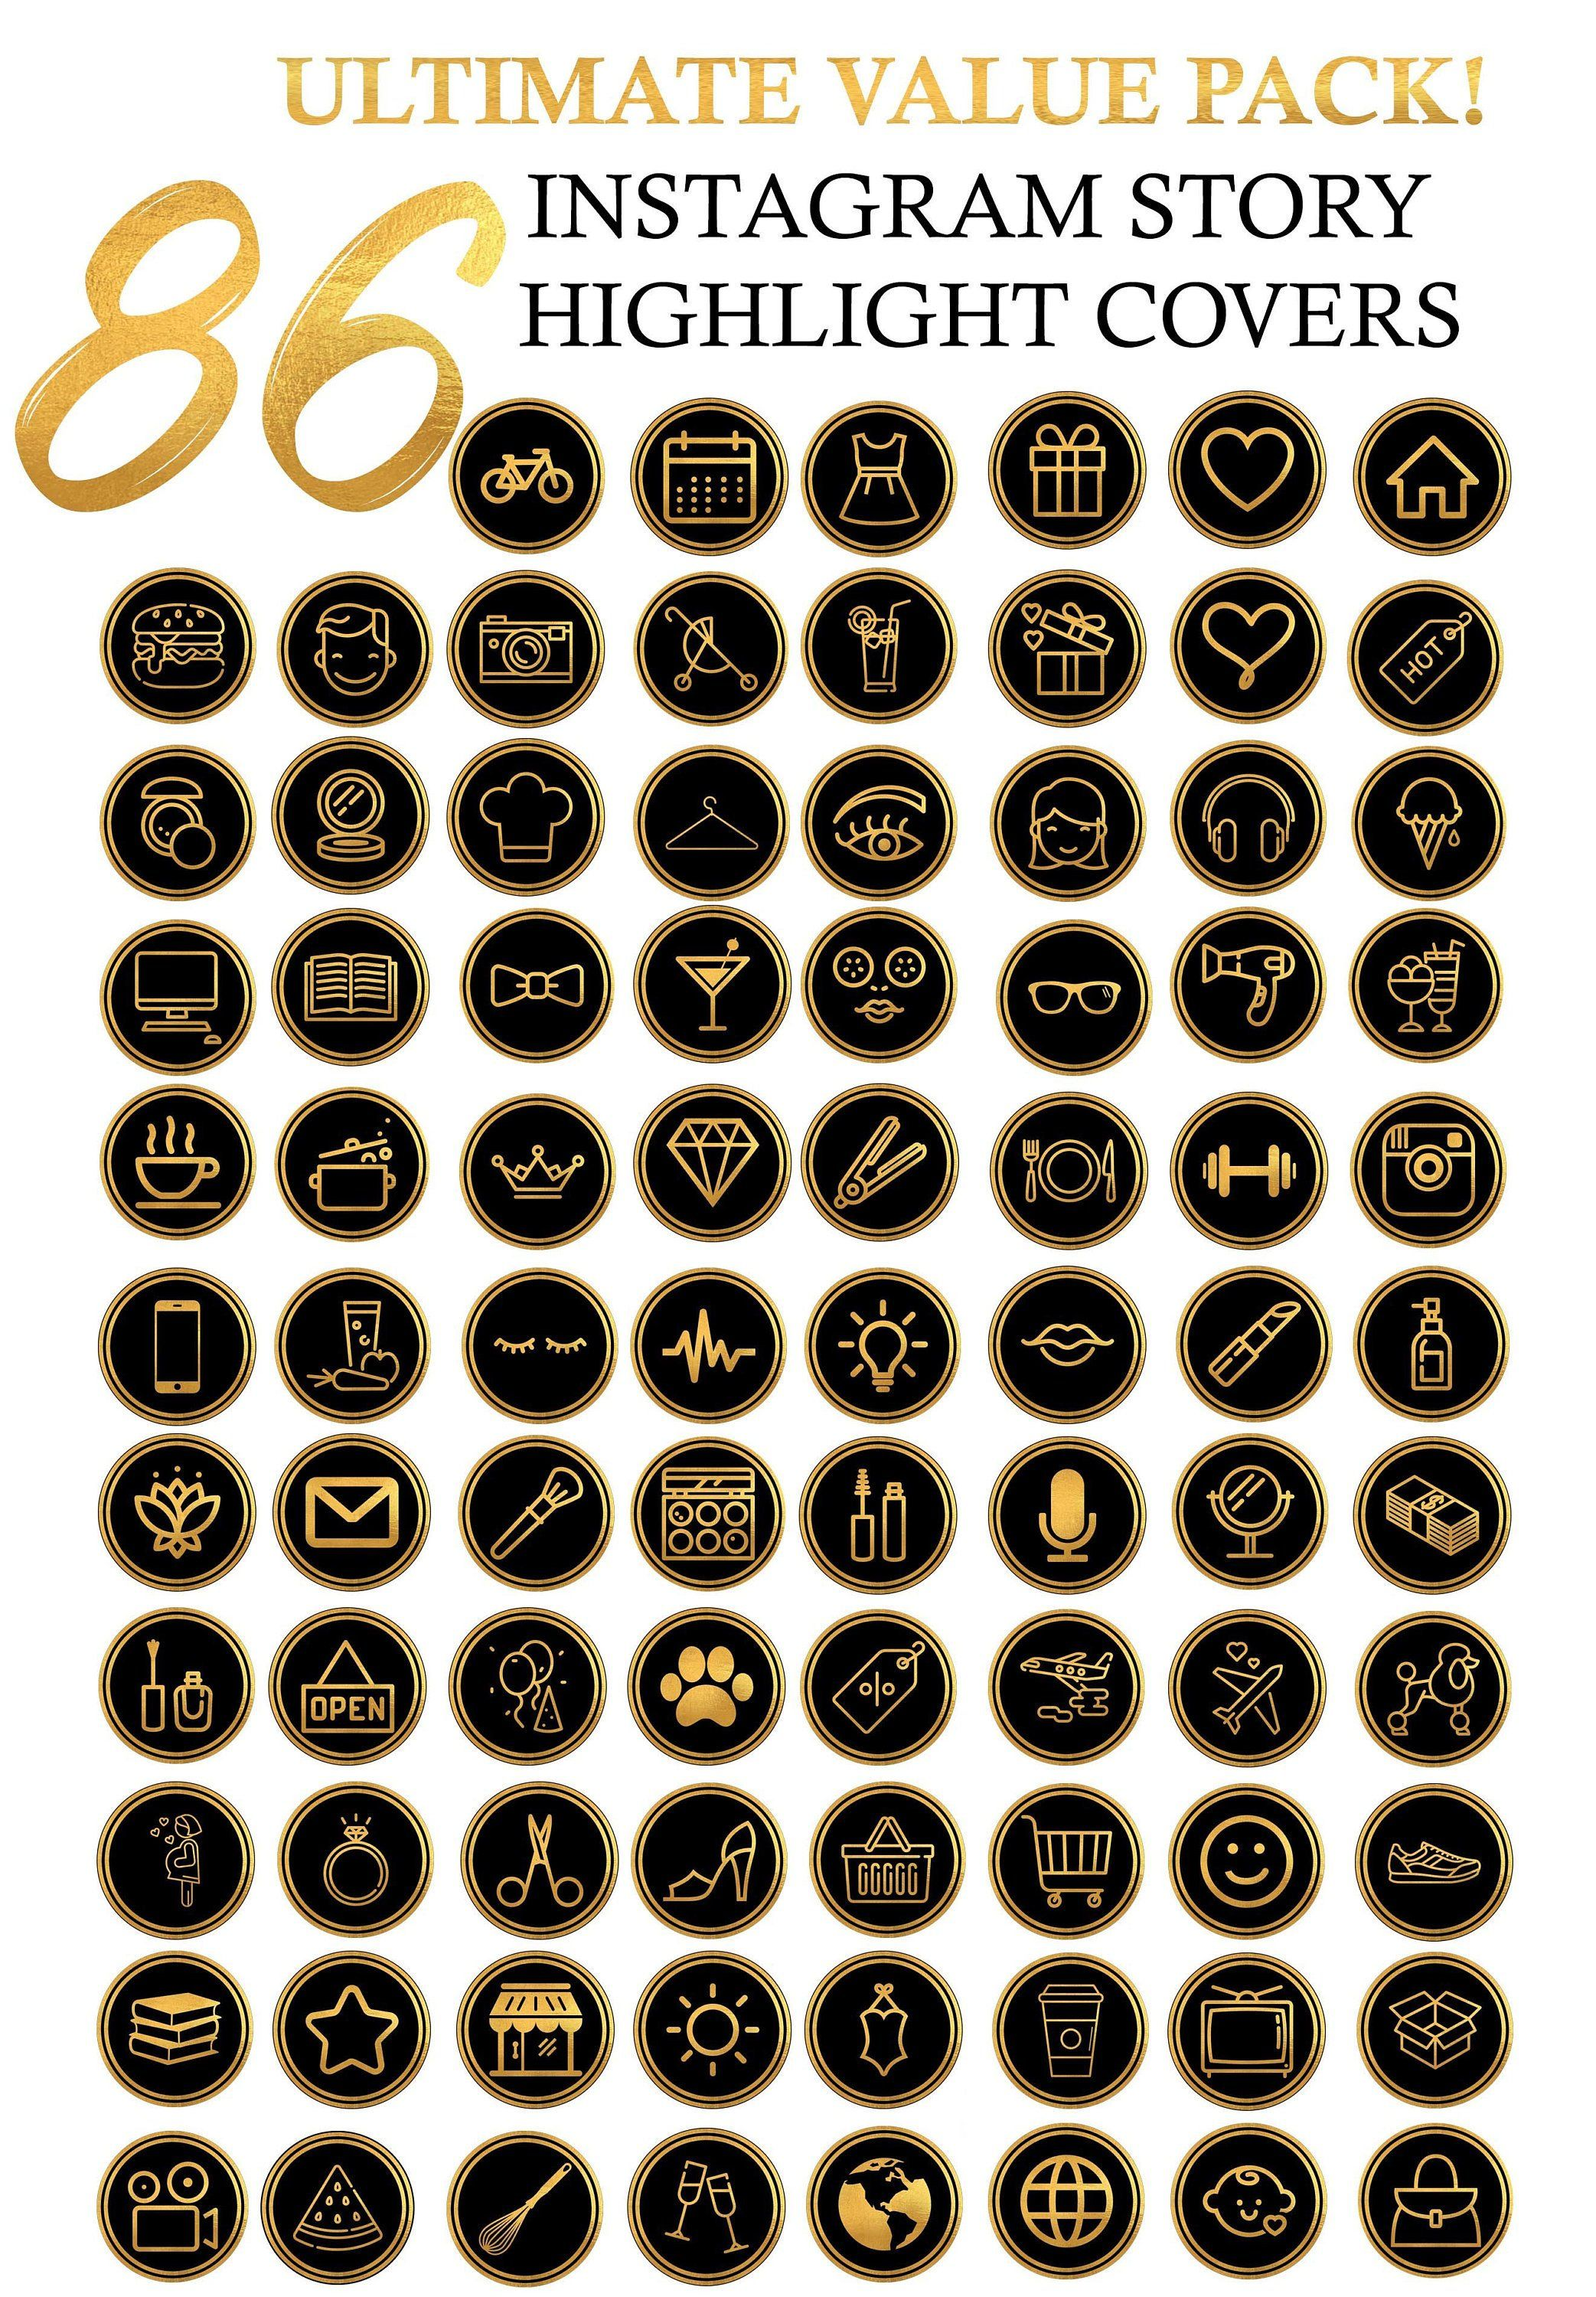 90 Instagram Story Highlight Icon Covers - Gold Foil ...